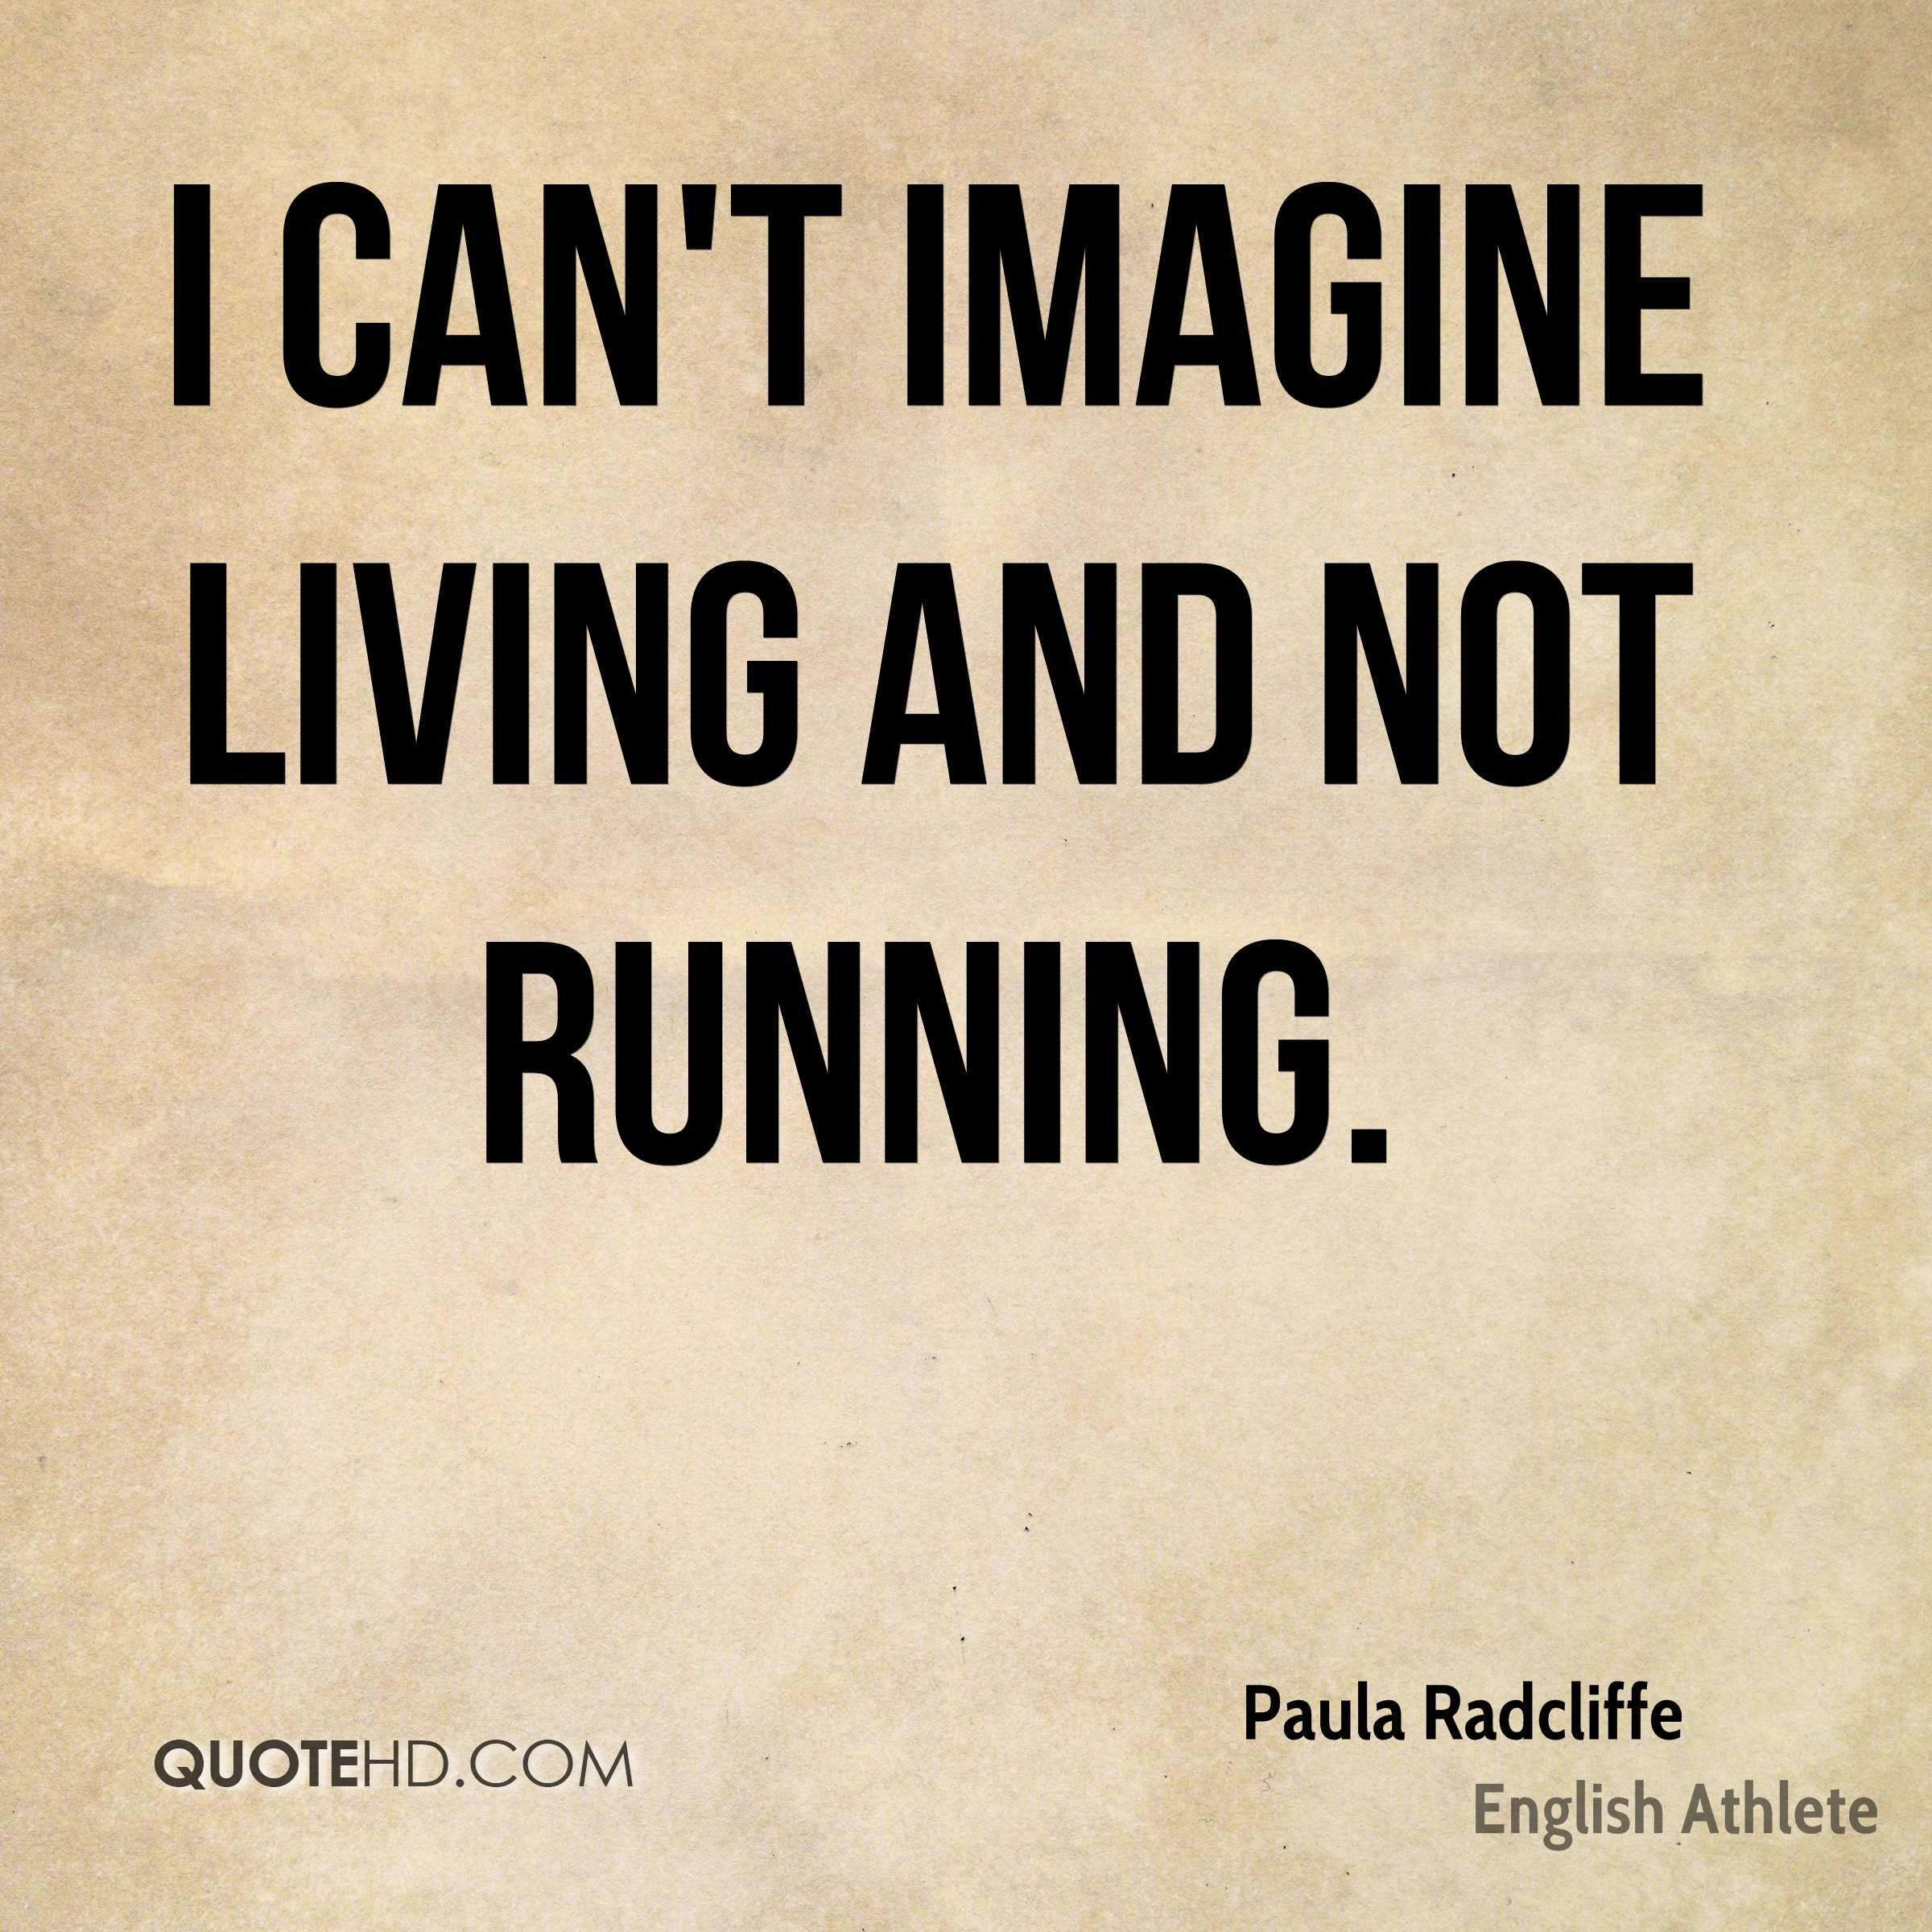 I can't imagine living and not running.